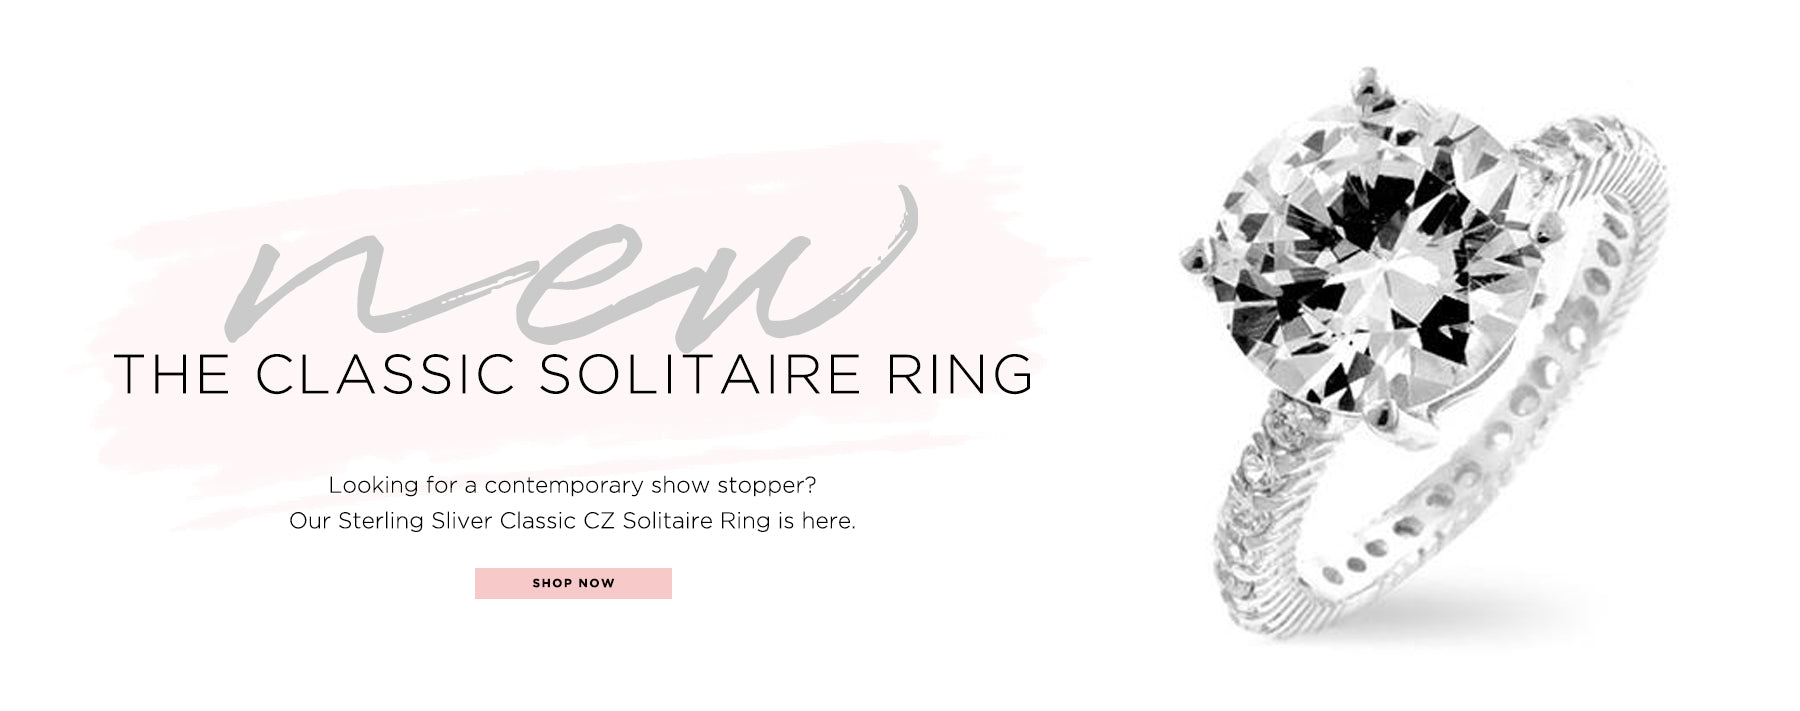 new. the classic solitaire ring. Looking for a contemporary show stopper? Our Sterling Silver Classic CZ Solitaire Ring is here. Shop now.